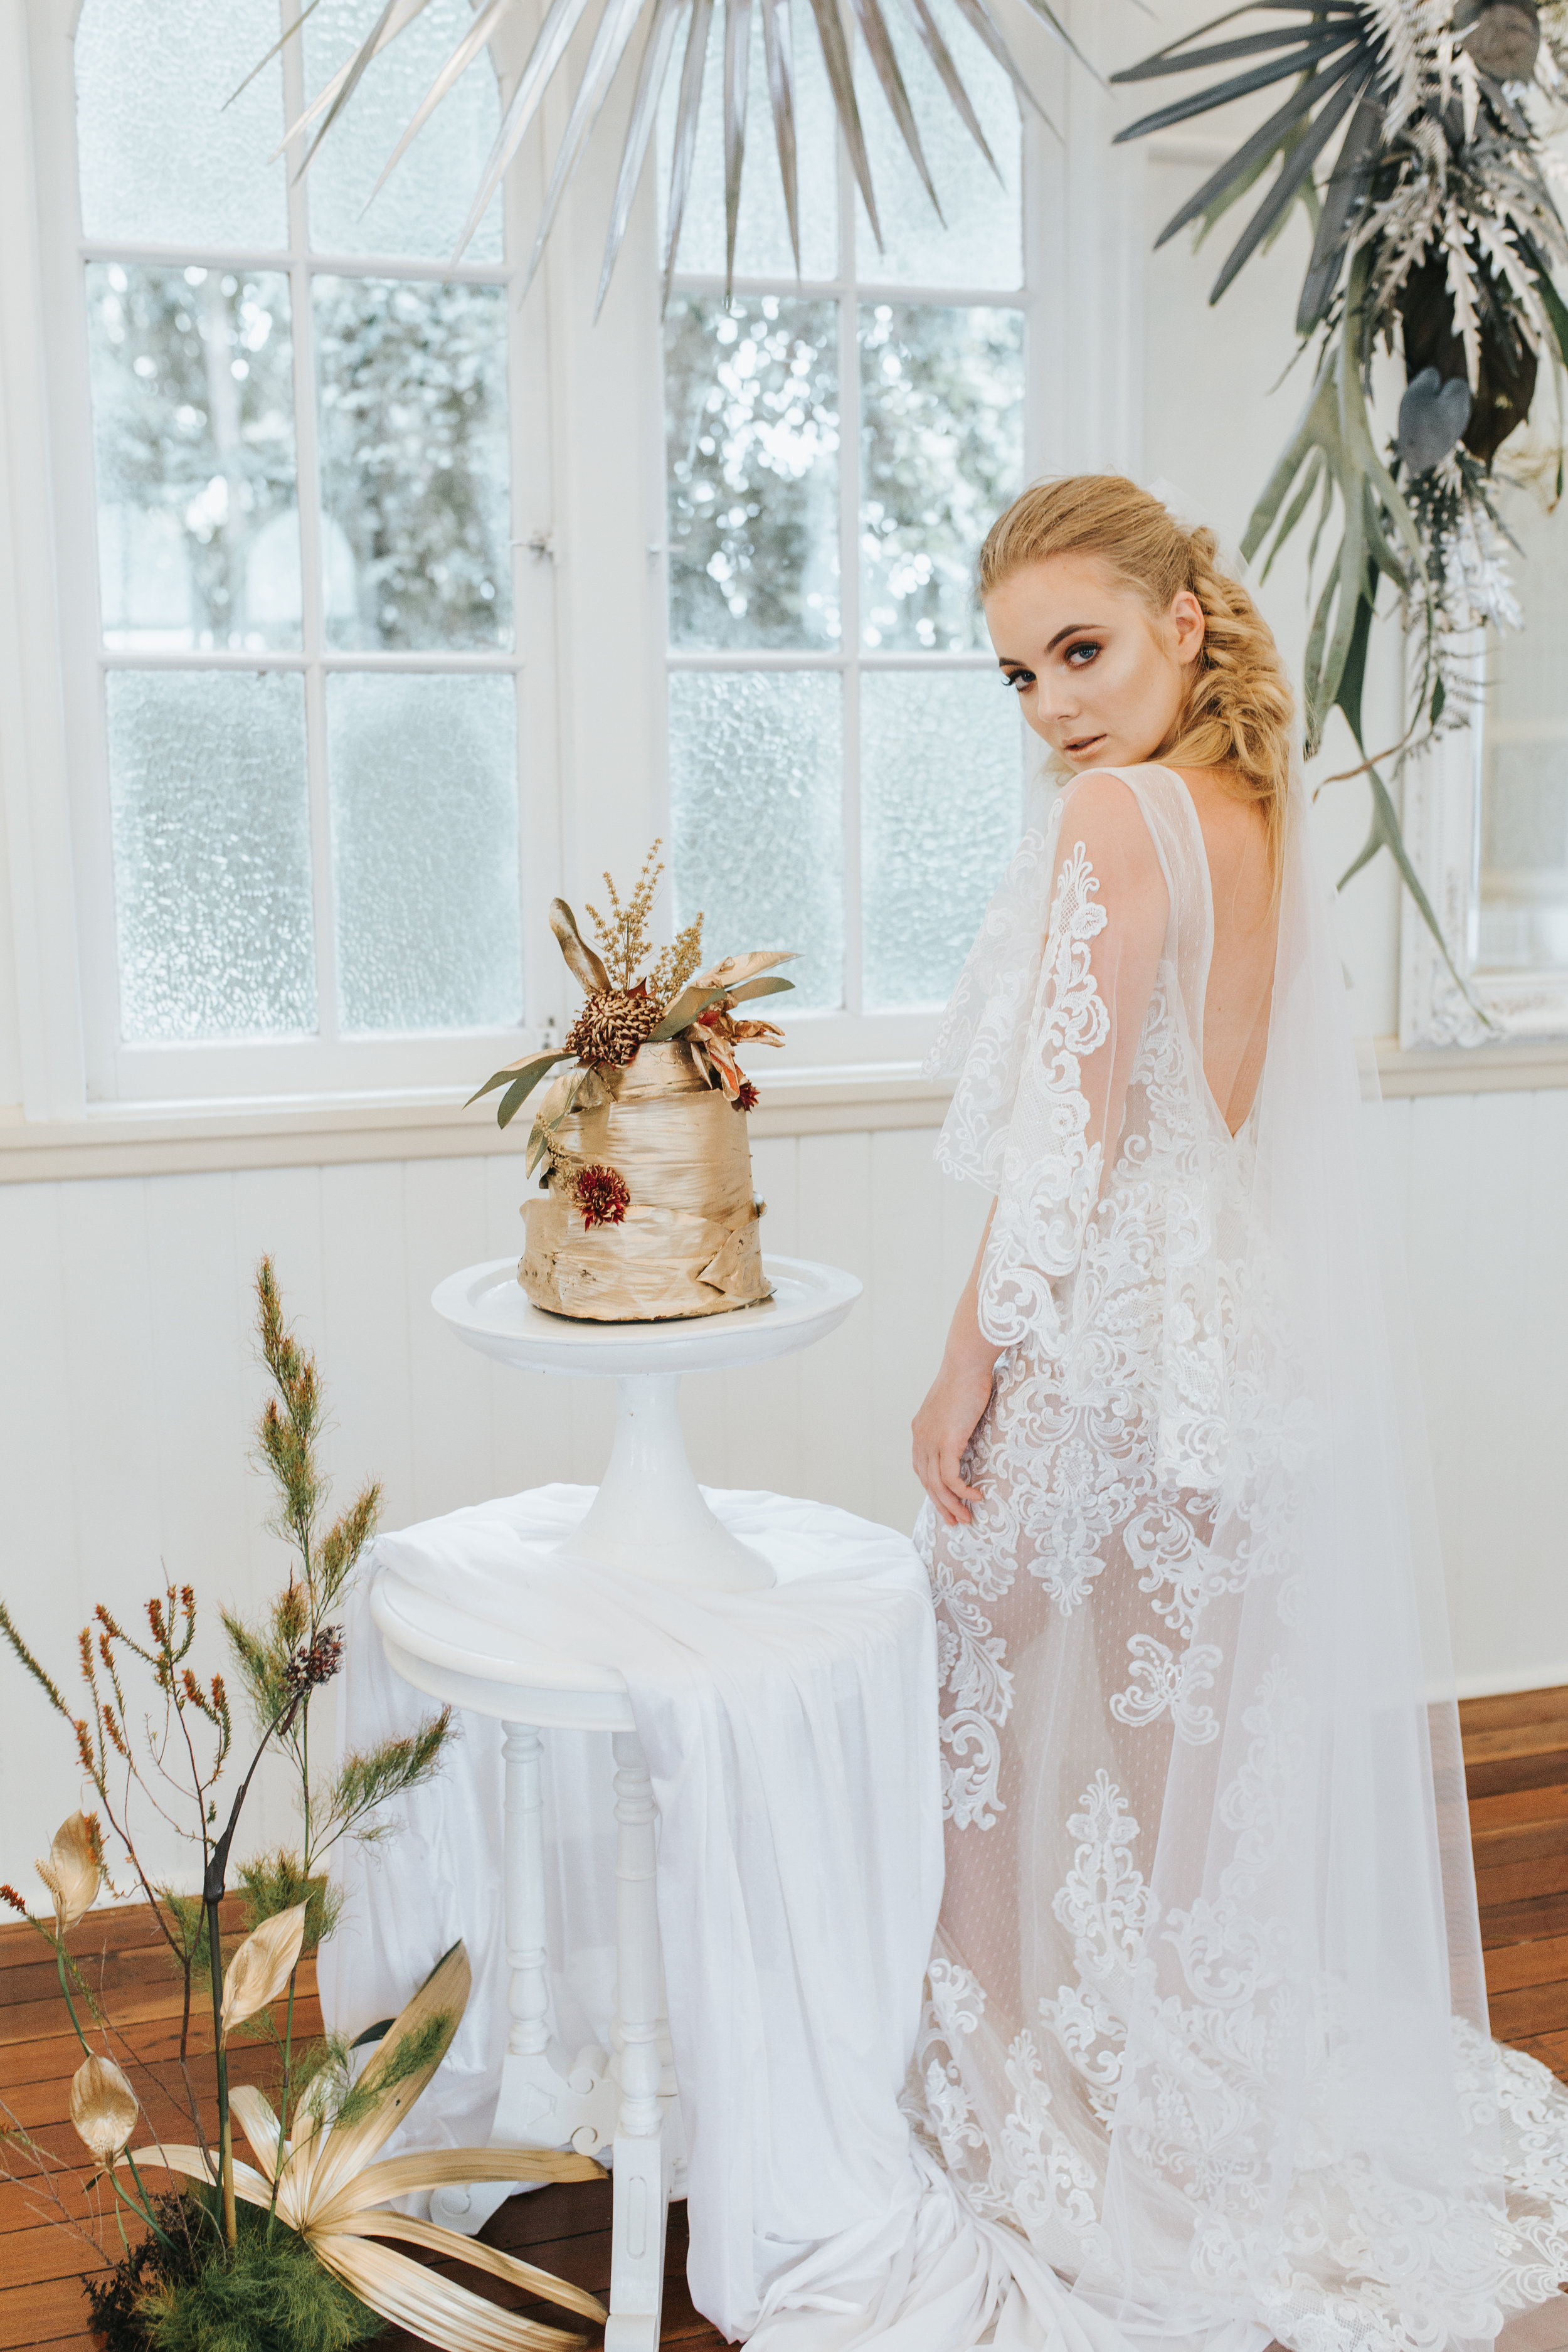 Bloodwood Botanica | Gold wedding cake